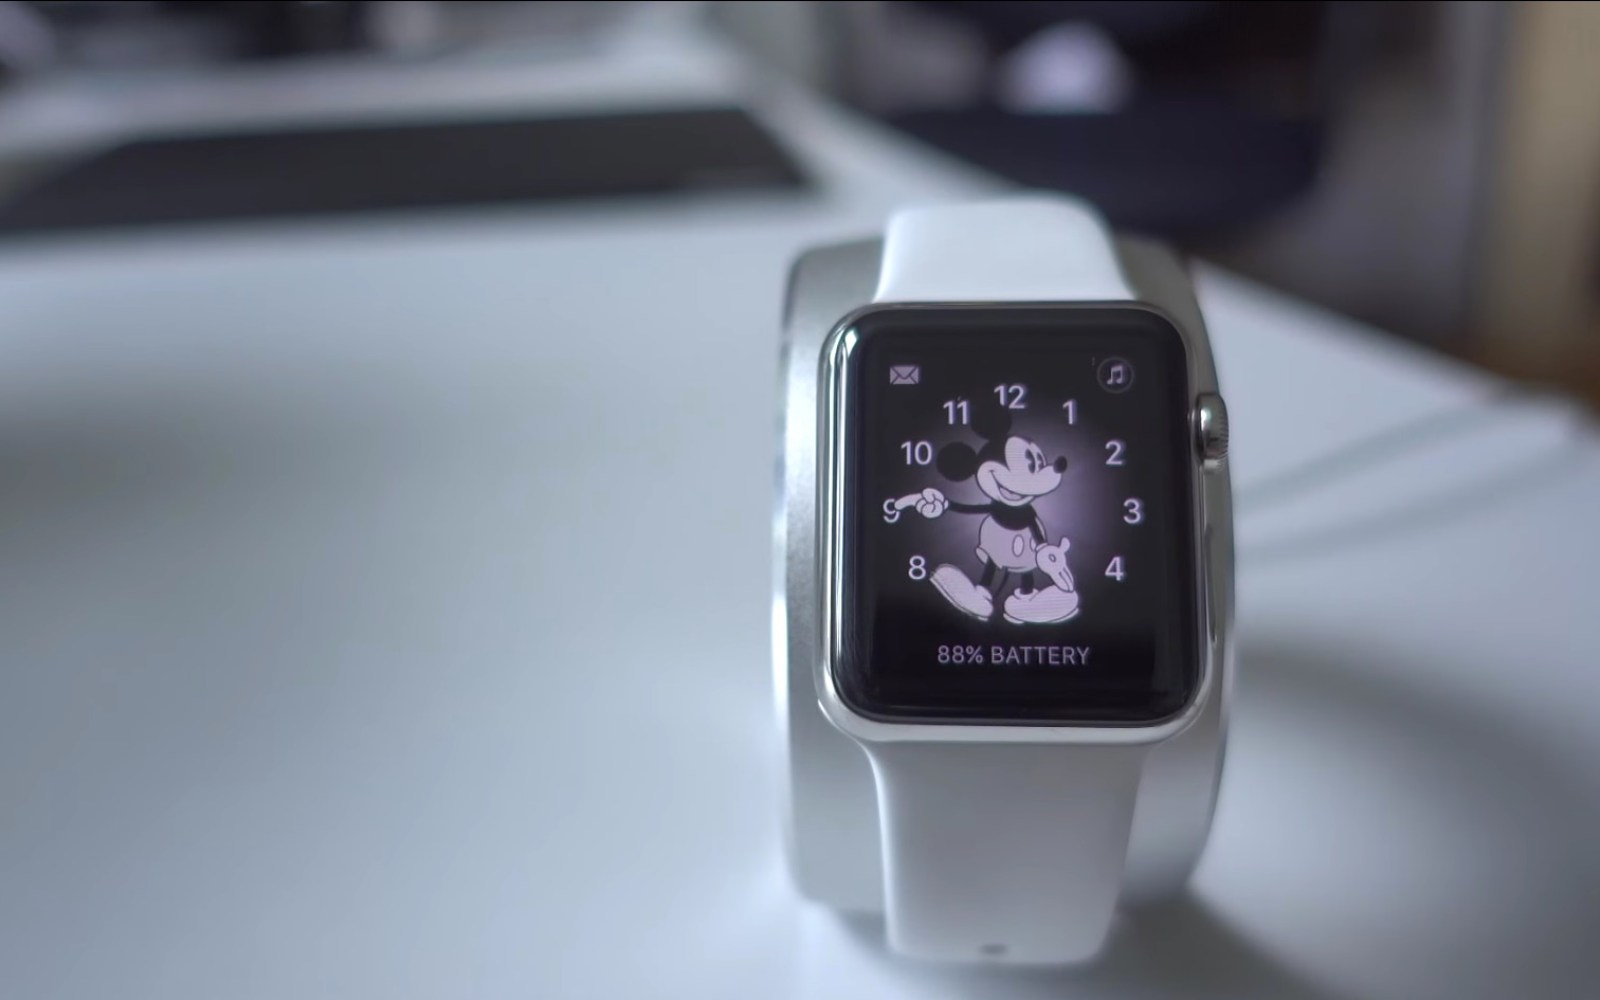 Apple Watch availability continues to deplete ahead of upcoming refresh